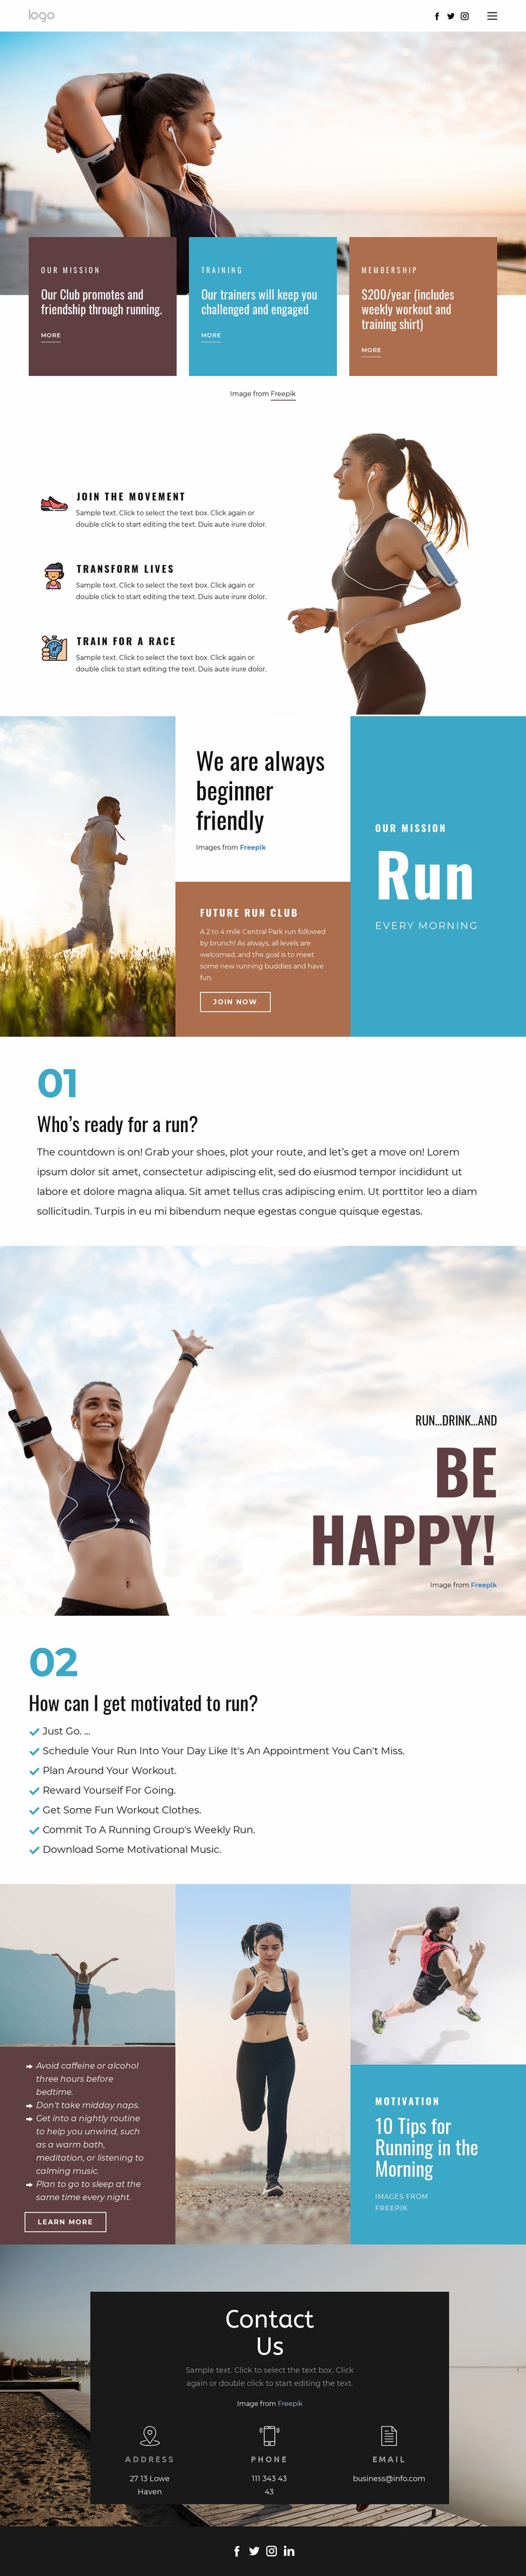 Running club for sports Website Template